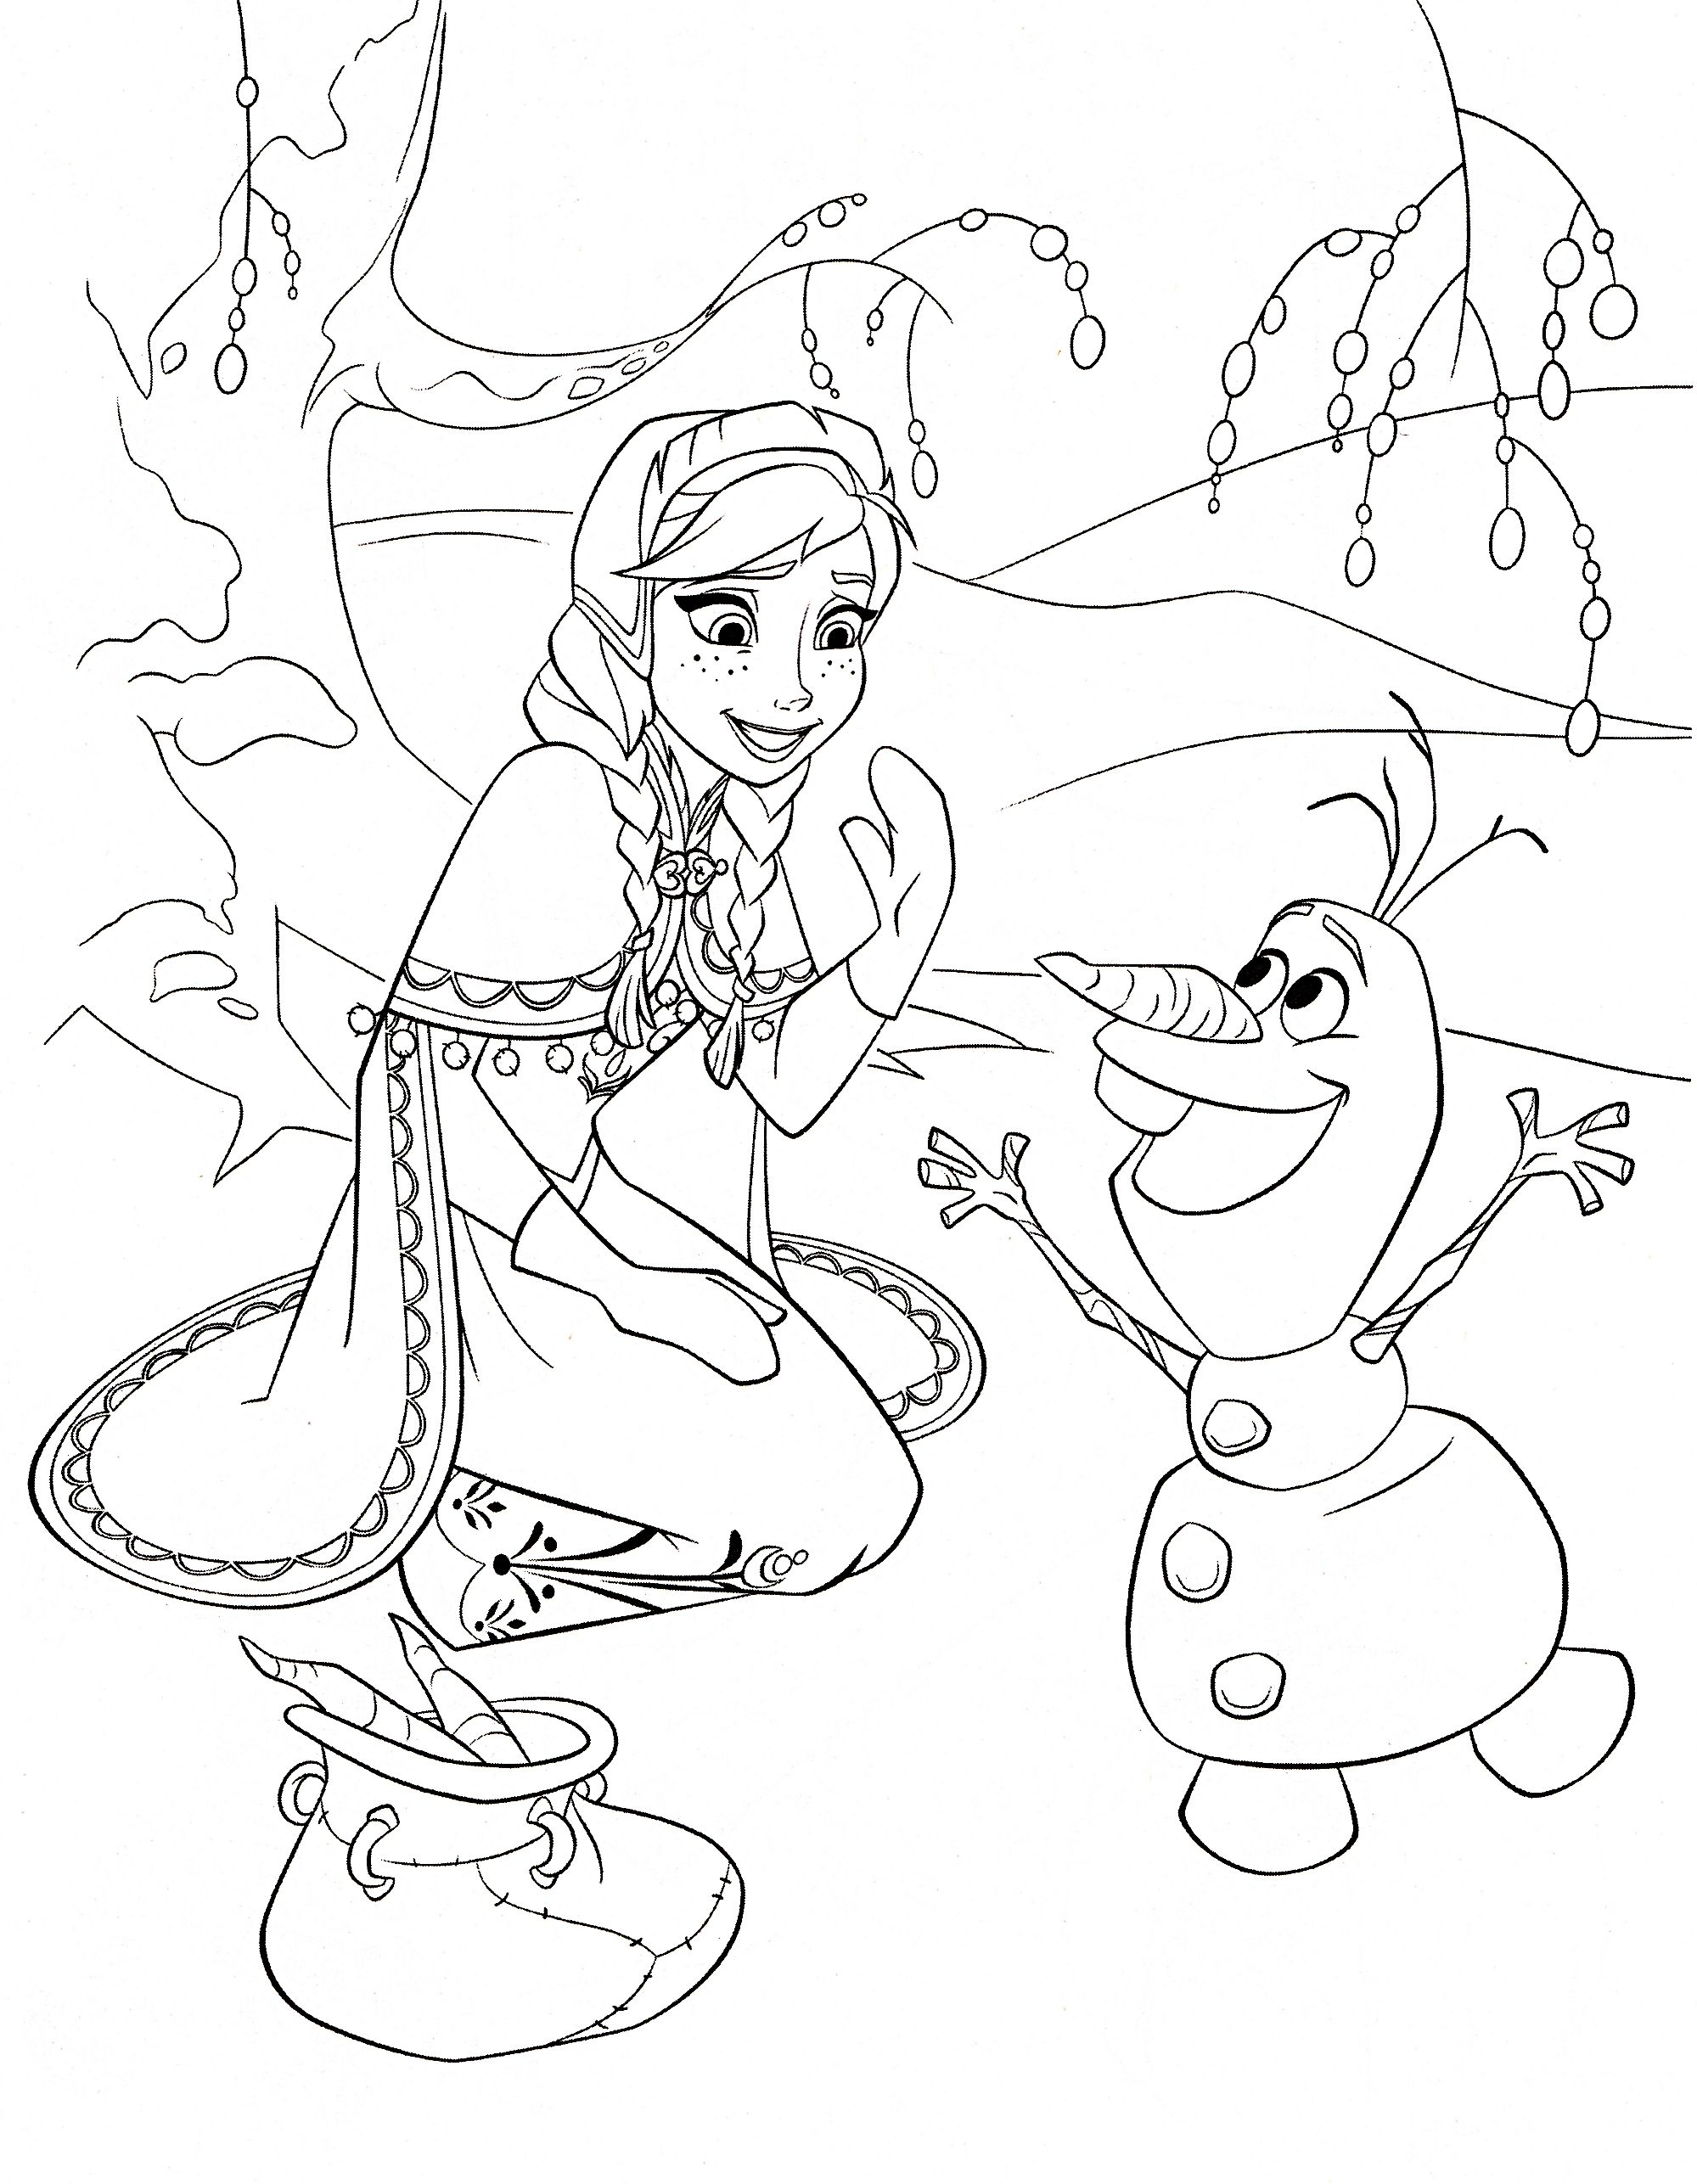 Colouring in pages games - Free Frozen Printable Coloring Activity Pages Plus Free Computer Games